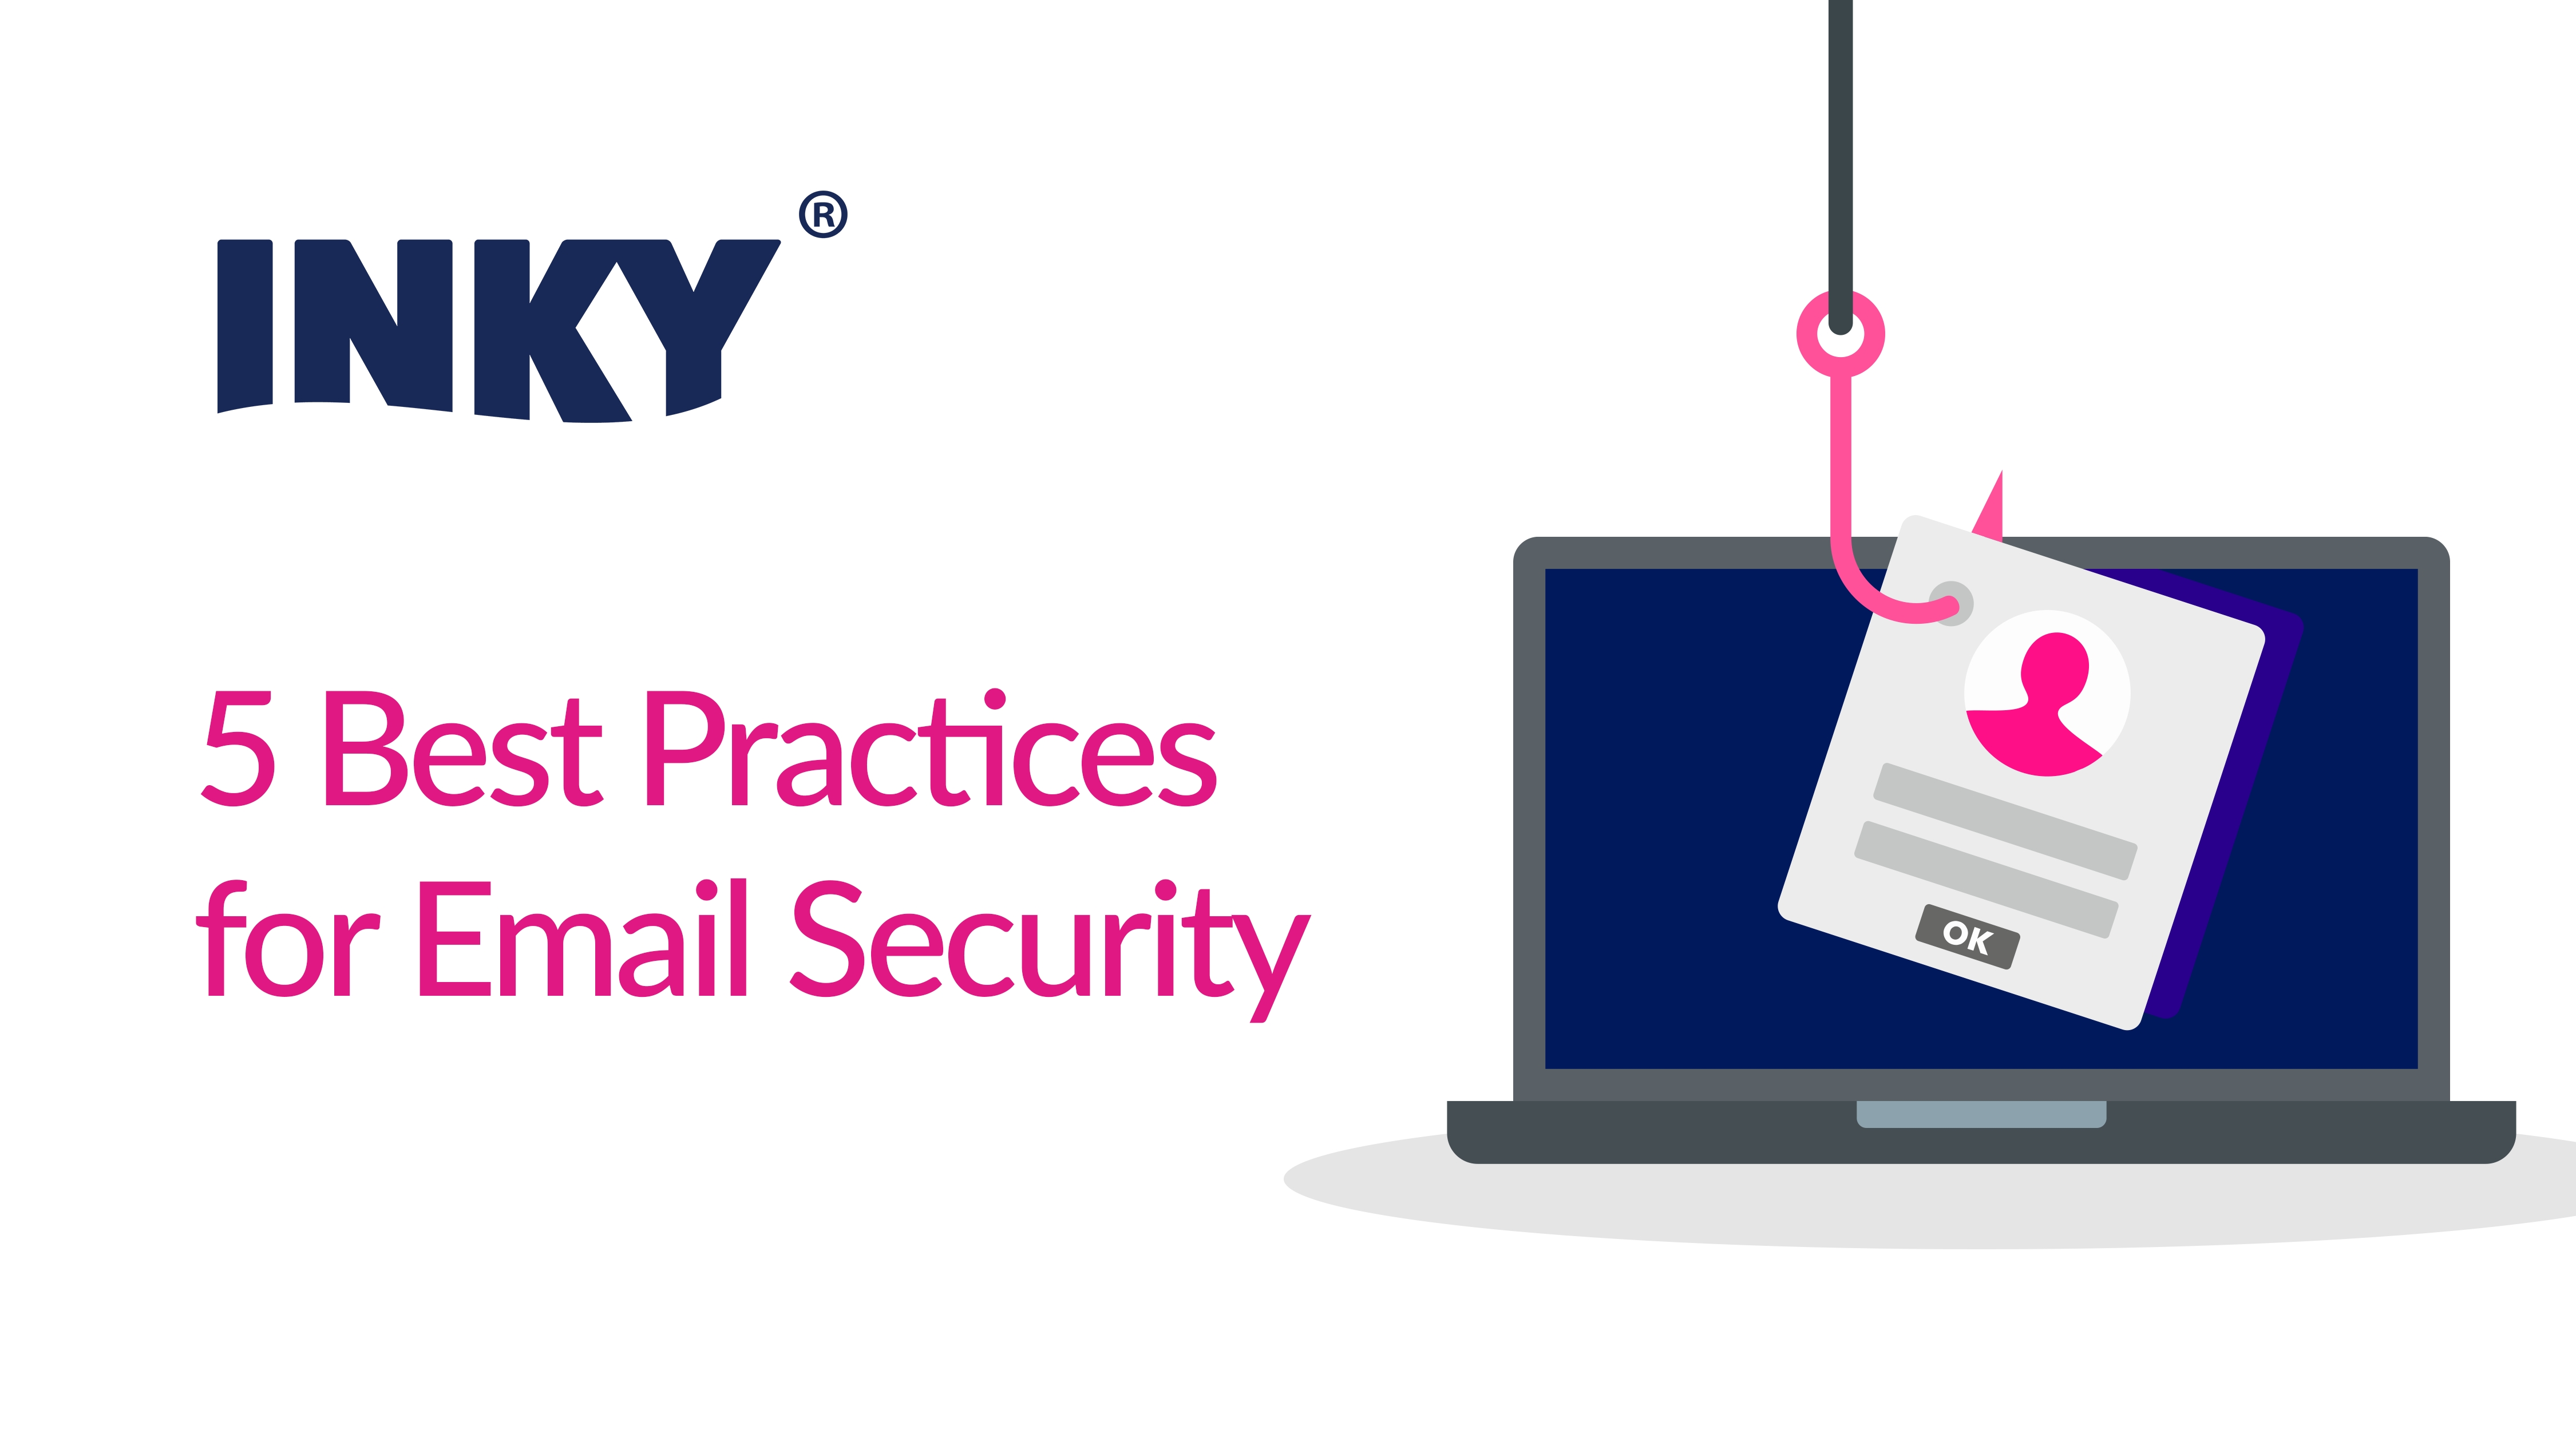 5-Tips-for-email-security-best-practices